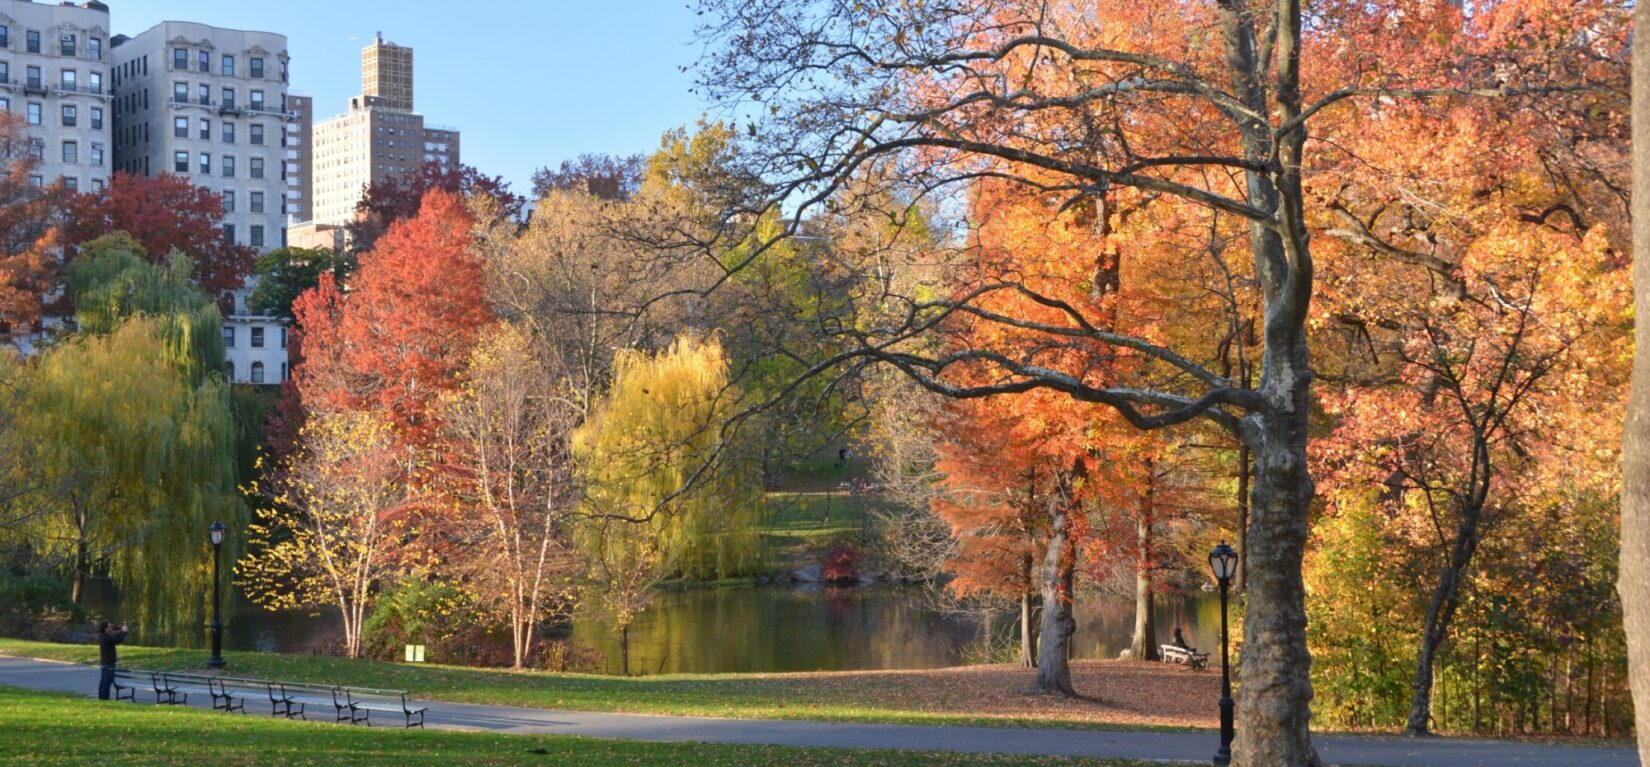 A clear autumn sky and colorful leaves enliven this photo of the Pool